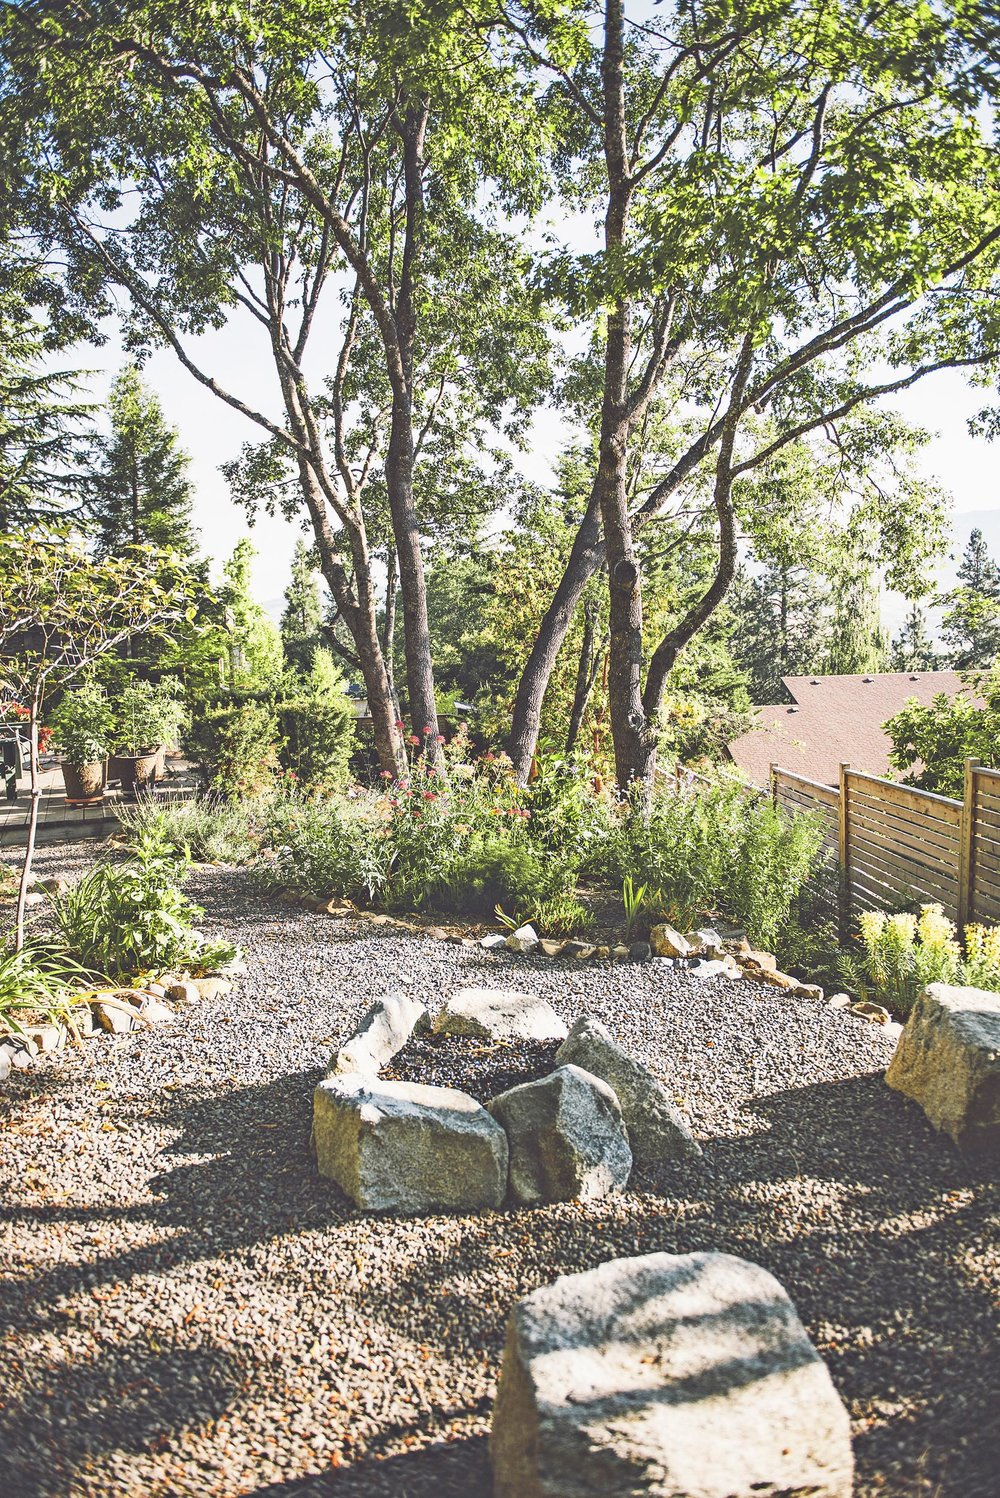 granite boulder fire pit + crushed basalt gravel paths + locally quarried rock + colorful perennial flower garden + oak canopy + modern slatted priva